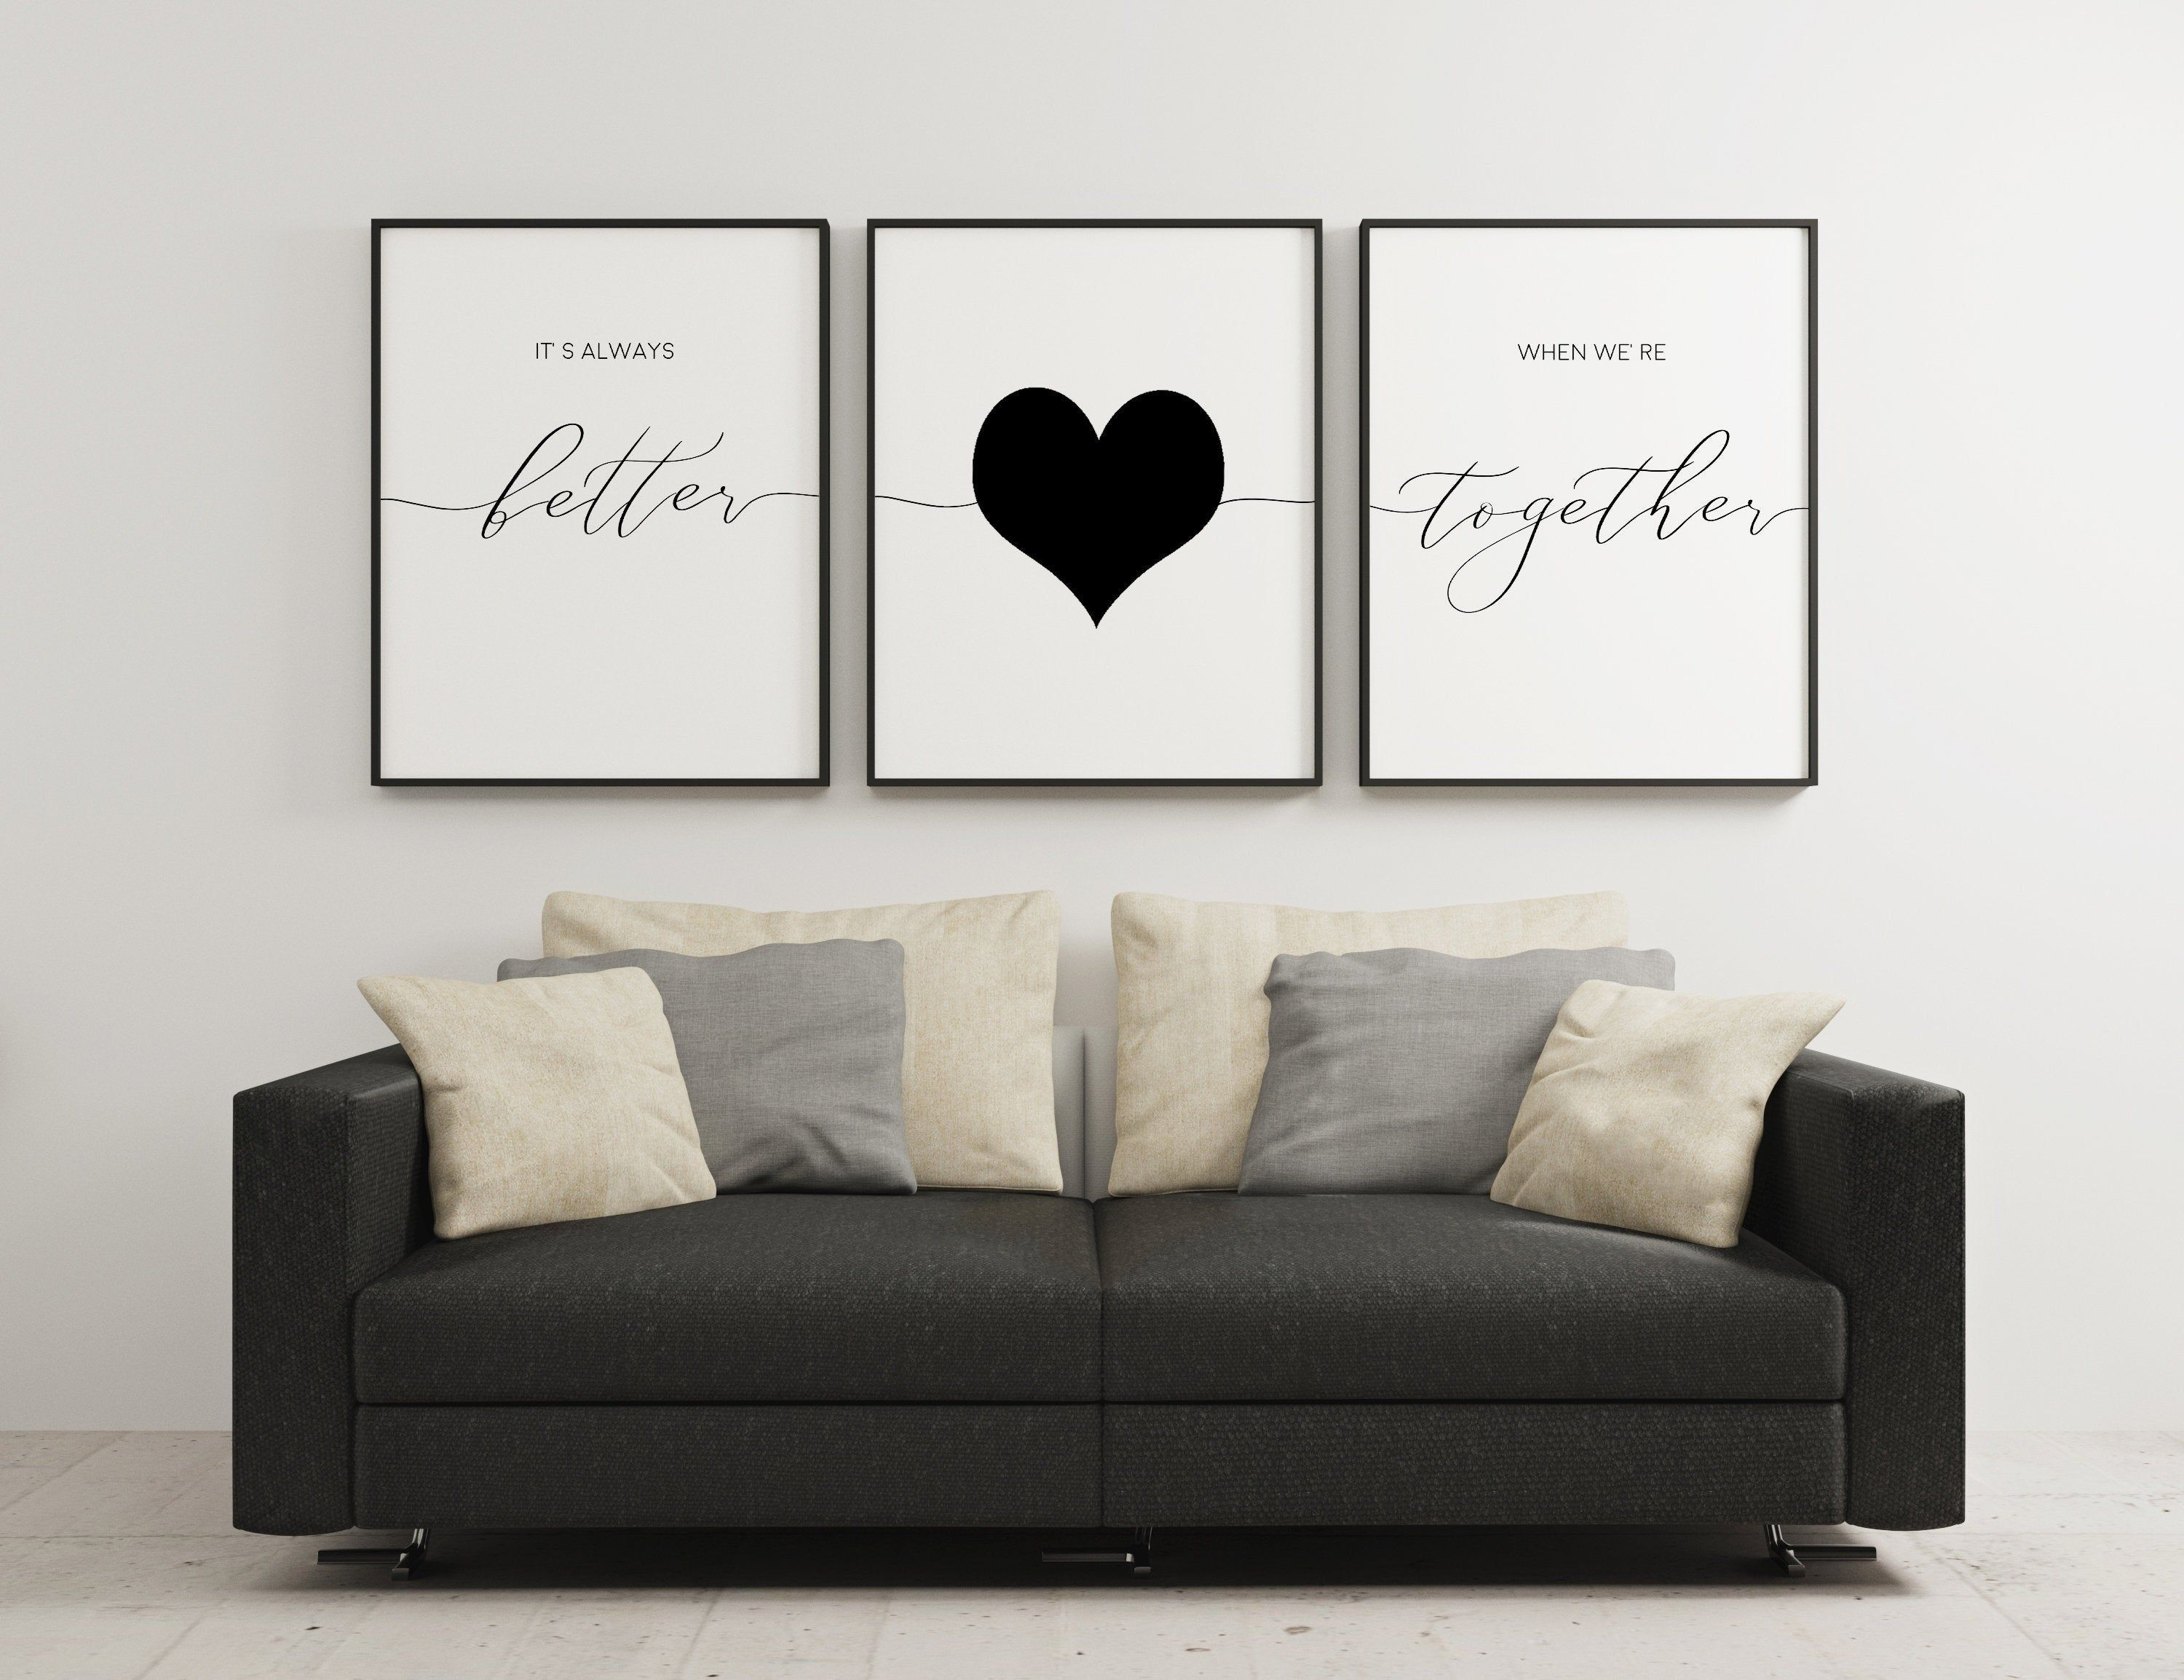 Set Of 3 Prints,It's Always Better When We're Together,Bedroom Art,Wedding Decor,Anniversary Gift,Couples Gifts,Heart Print,Digital Download